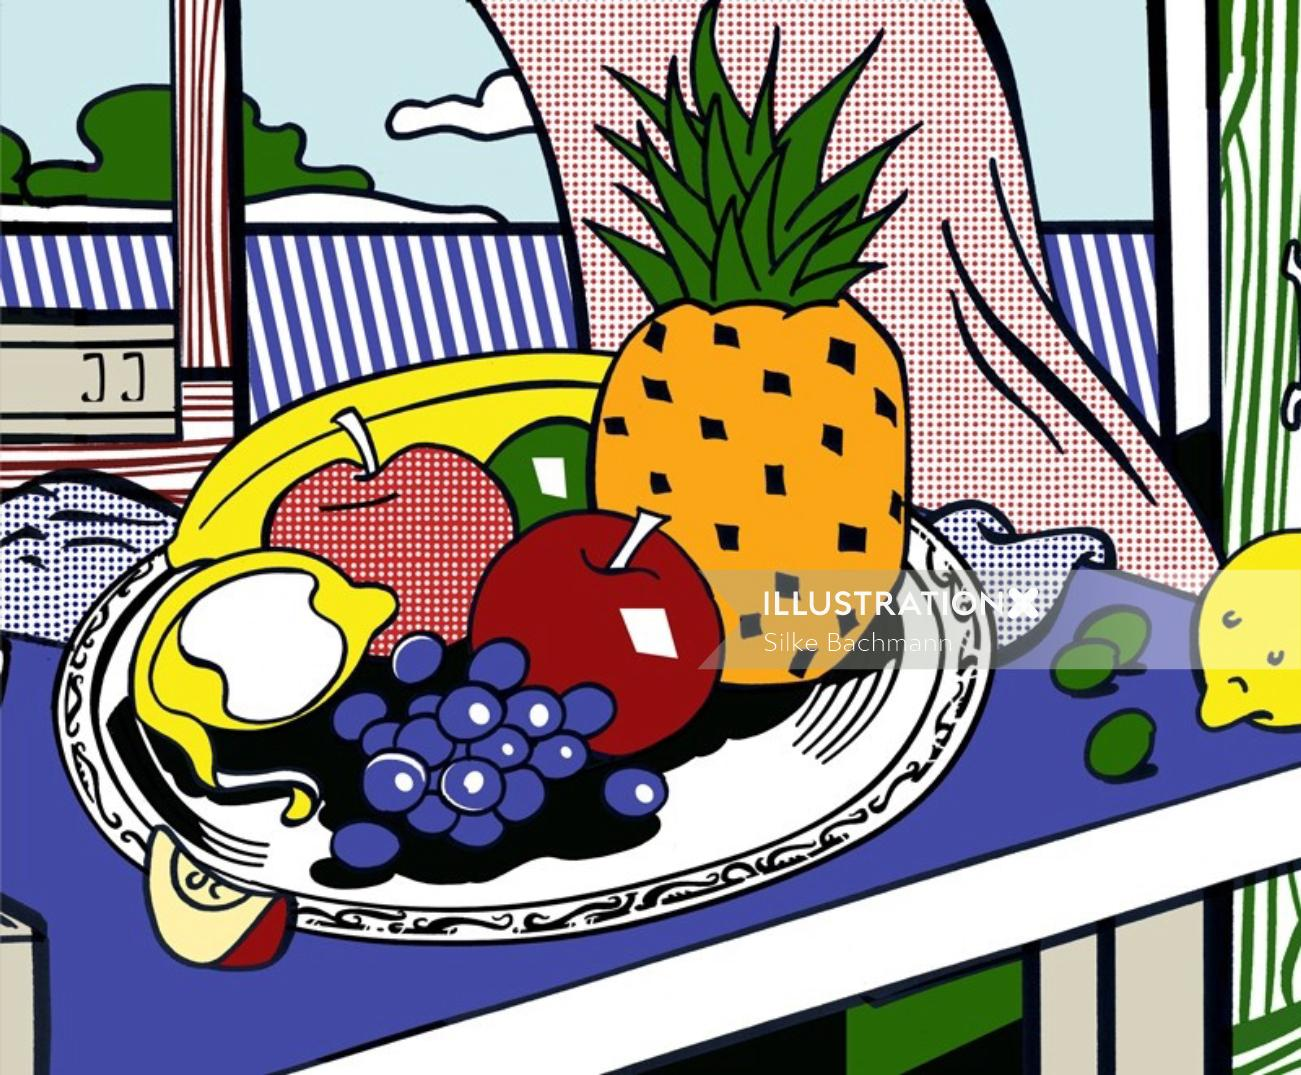 Fruits illustration by Silke Bachmann